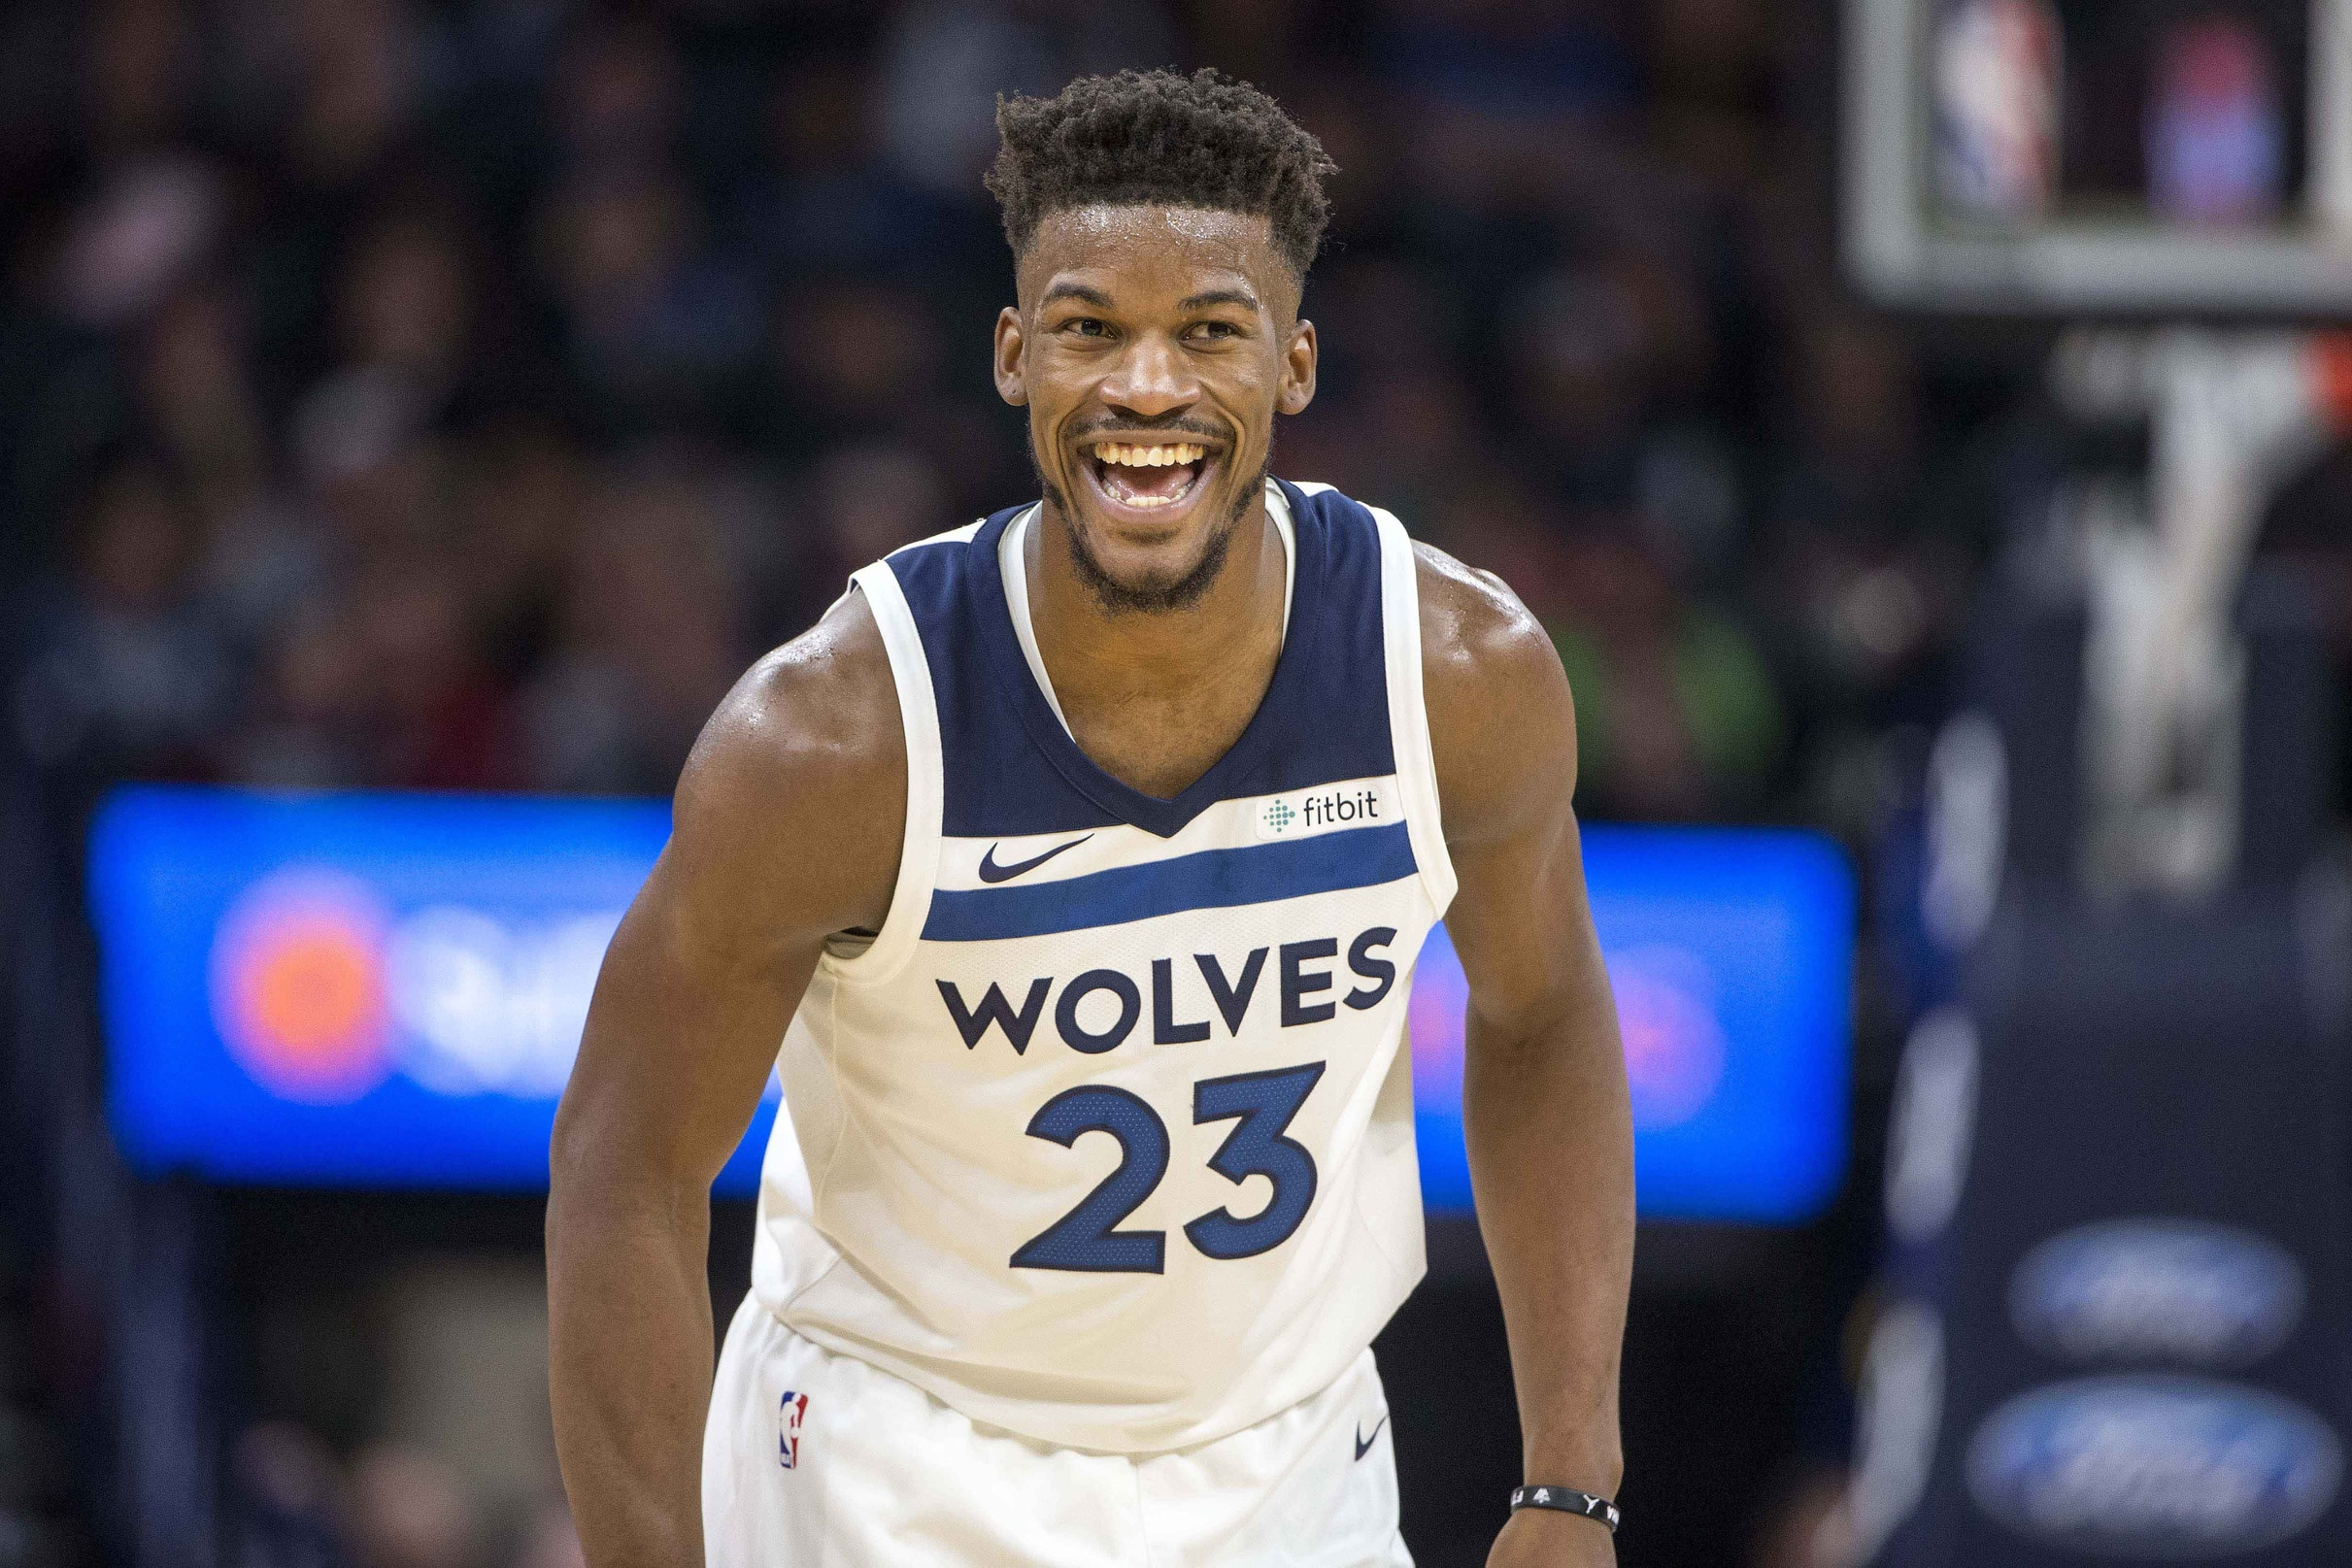 new arrival d6850 af4d3 Twitter reacts to growing Jimmy Butler saga as T-Wolves ...